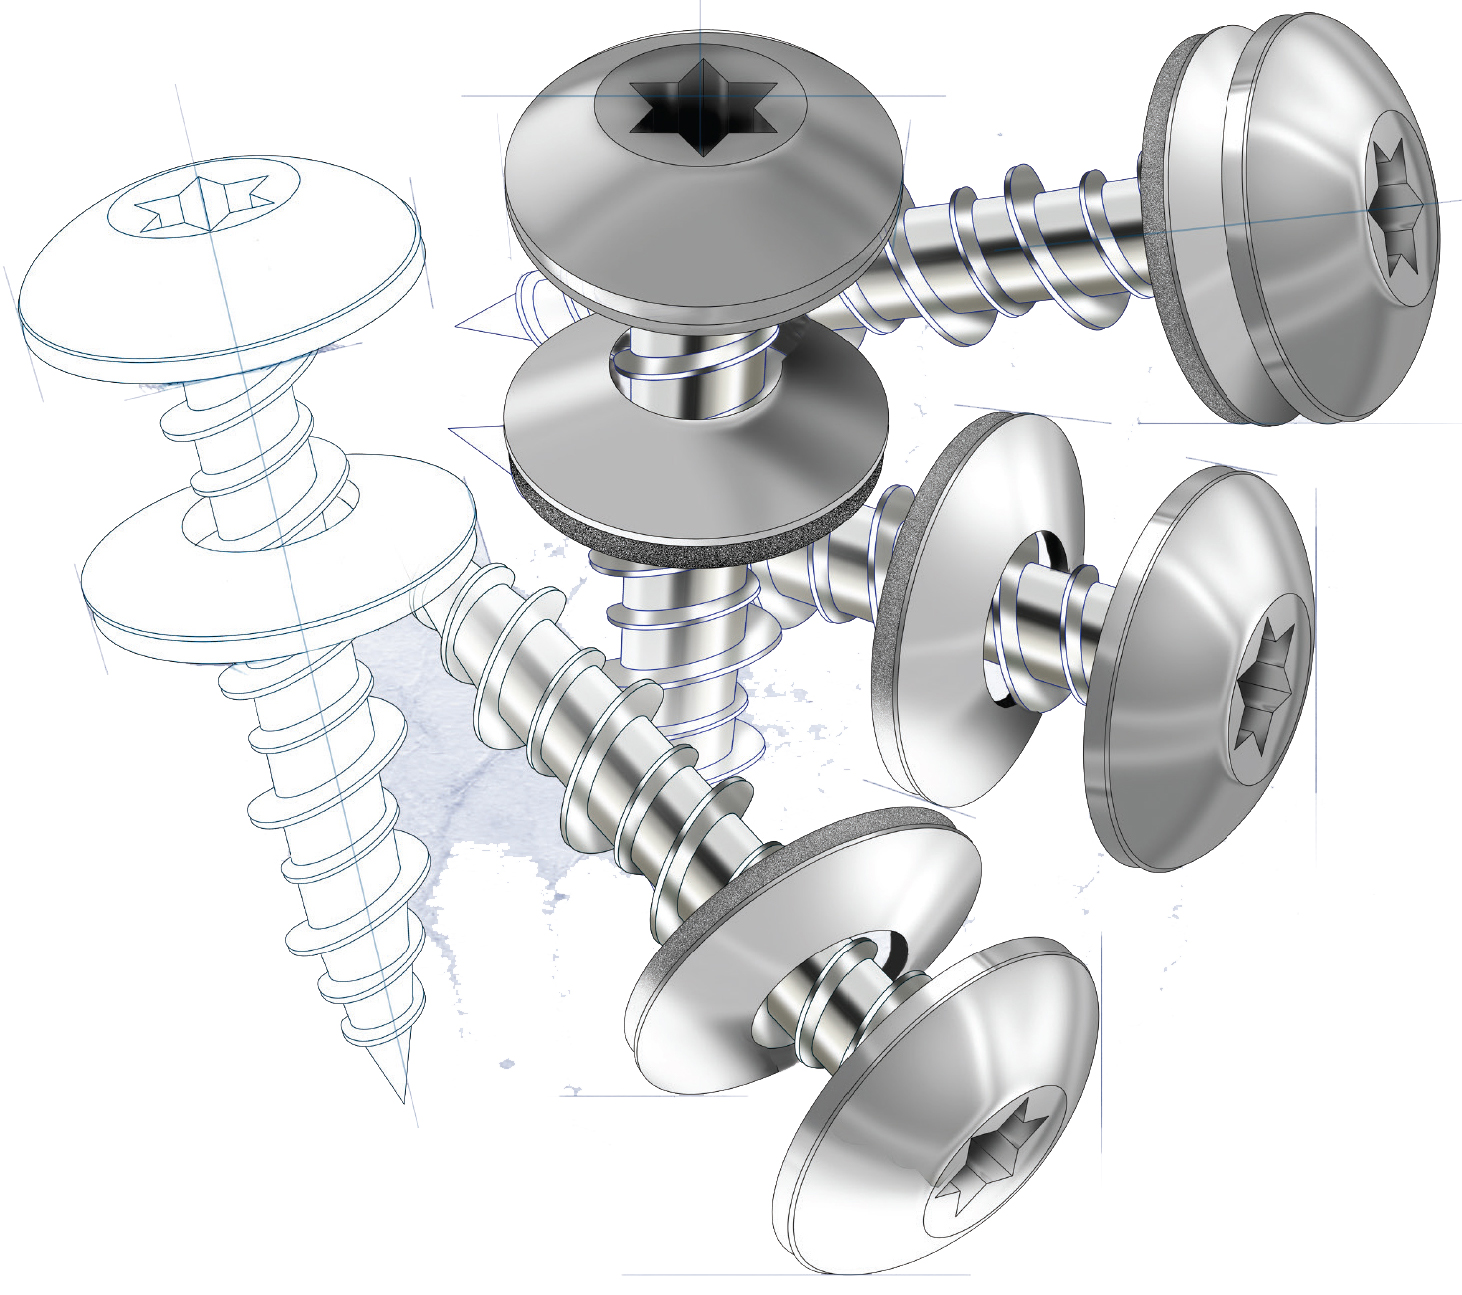 http://kentuckianabuilding.com/sites/kentuckianabuilding.com/assets/images/default/difference-fasteners.jpg